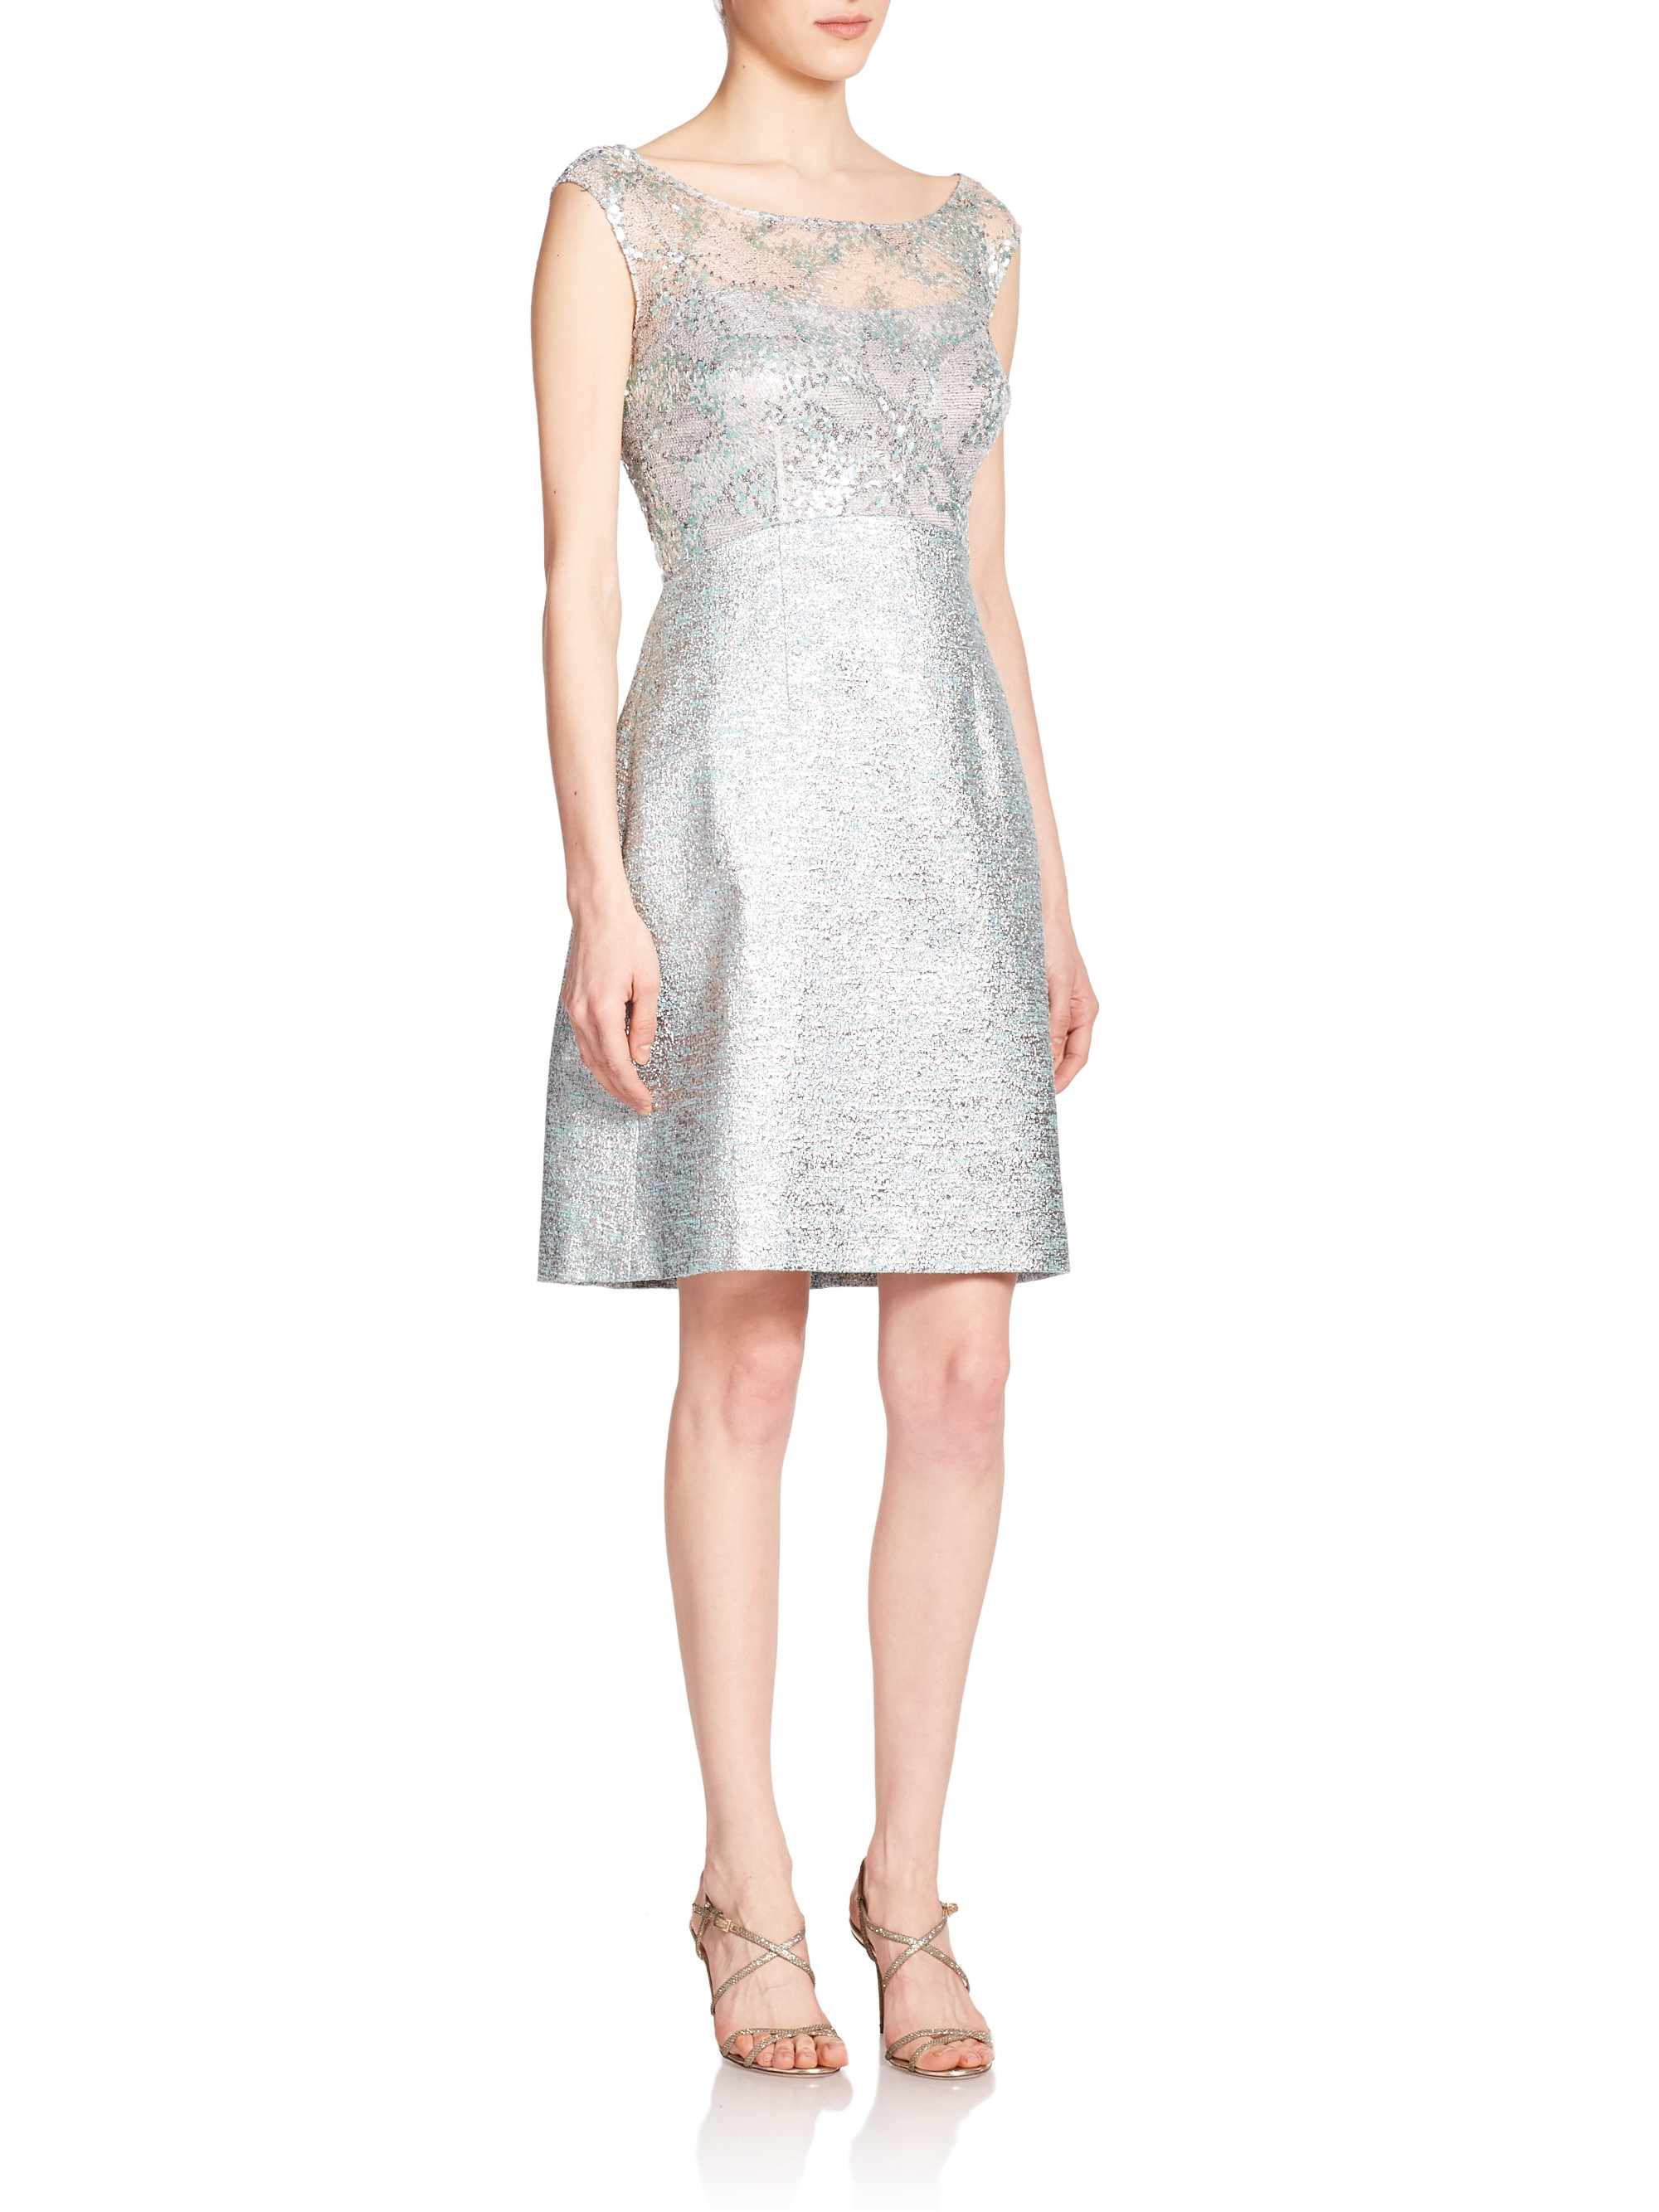 bd0ad5a1799 Lyst - Kay Unger Sequined Tweed Sheath Dress in Blue